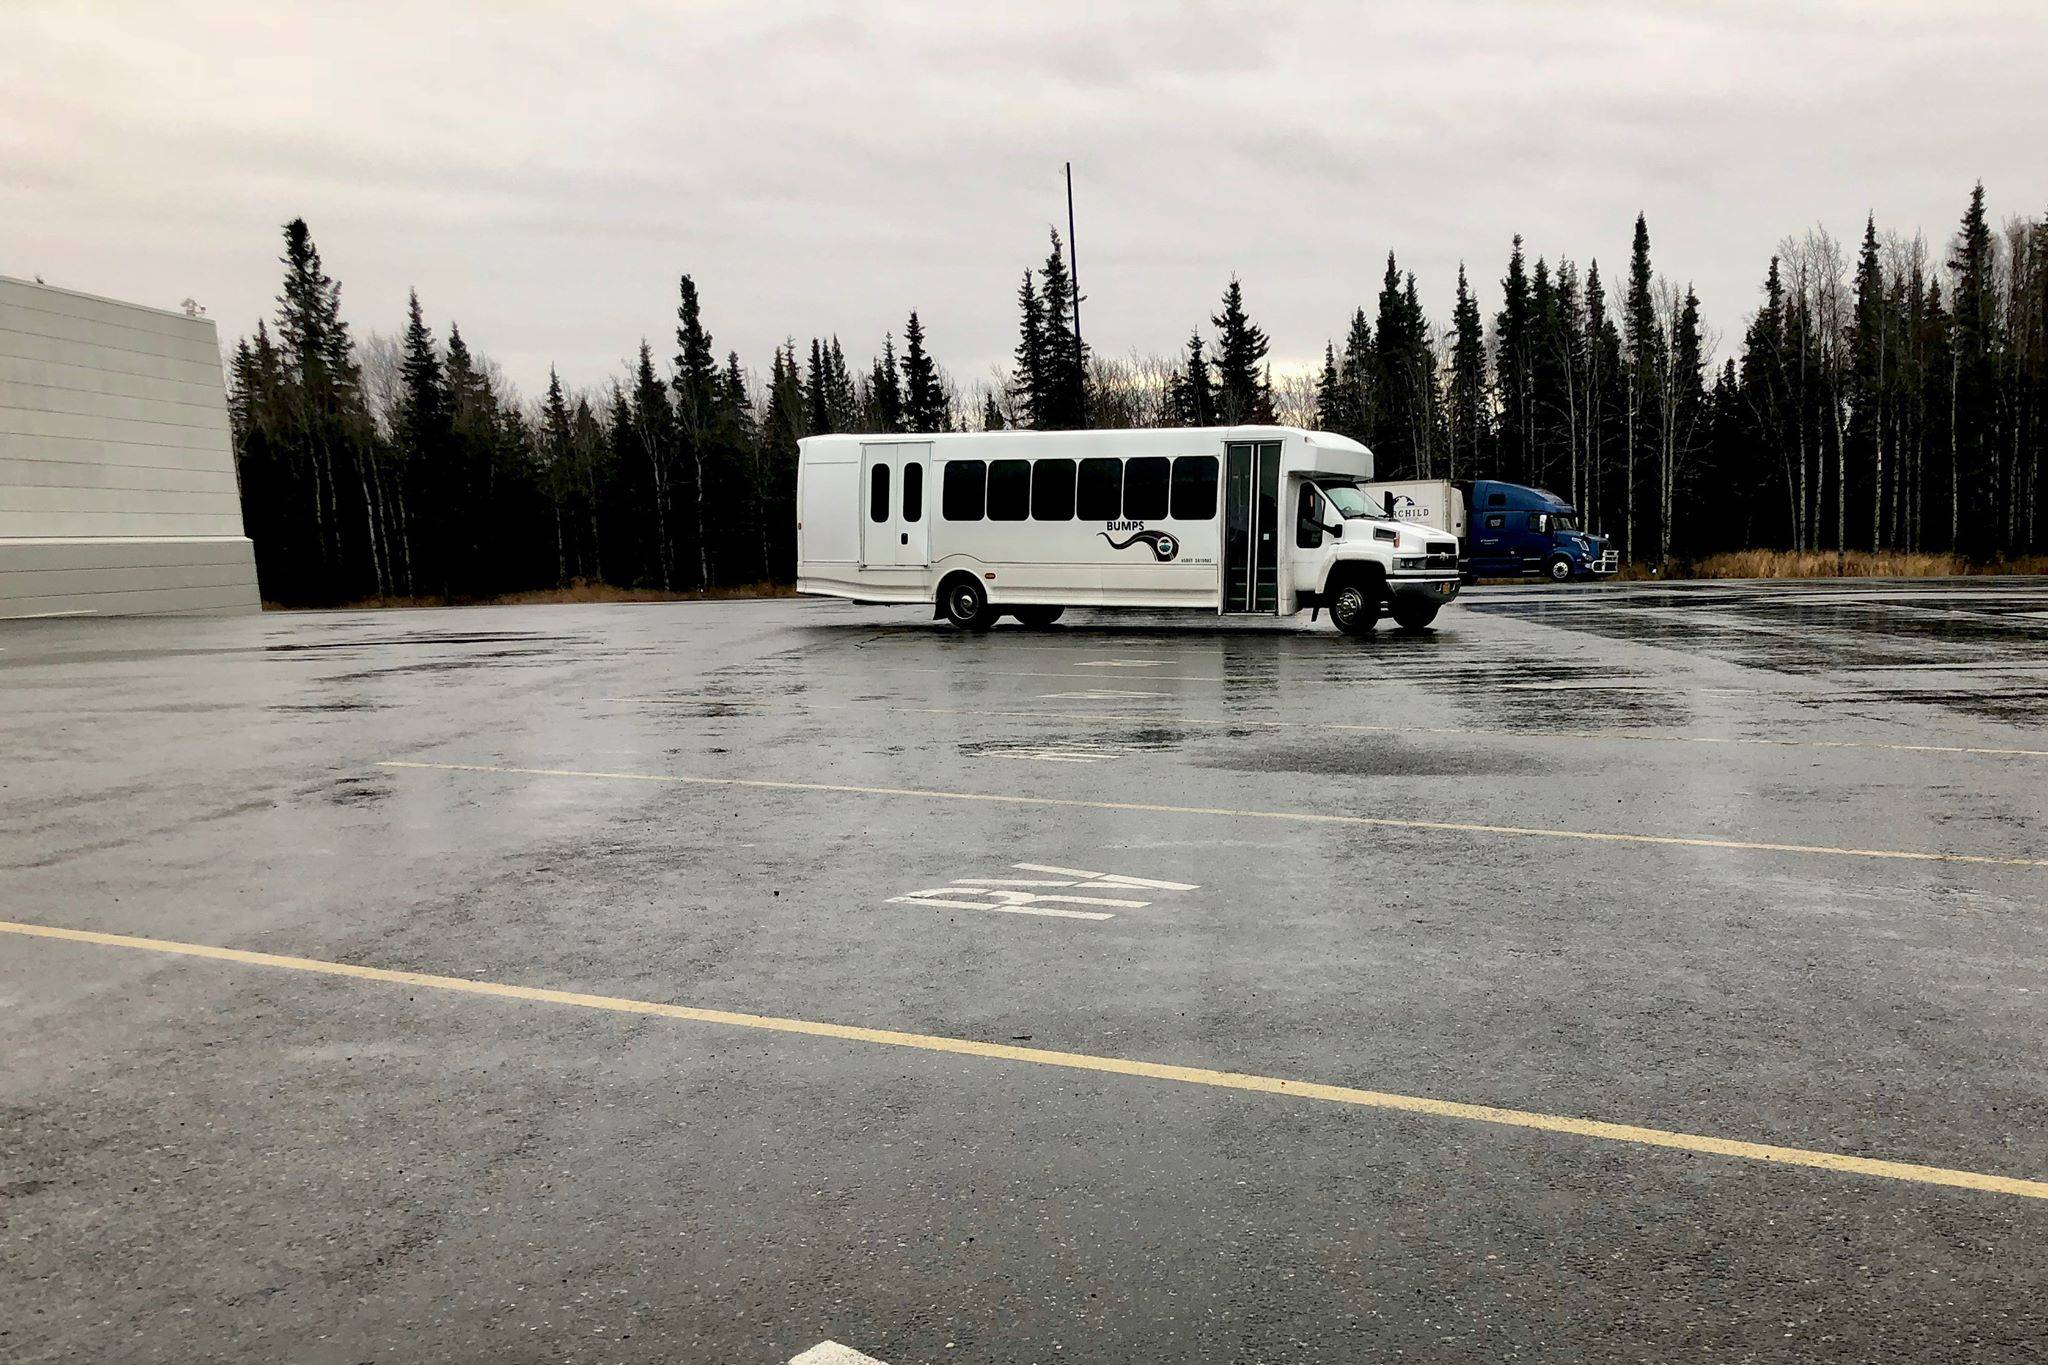 A BUMPS bus waits for passengers in the Walmart parking lot Monday in Kenai. (Photo by Victoria Petersen/Peninsula Clarion)